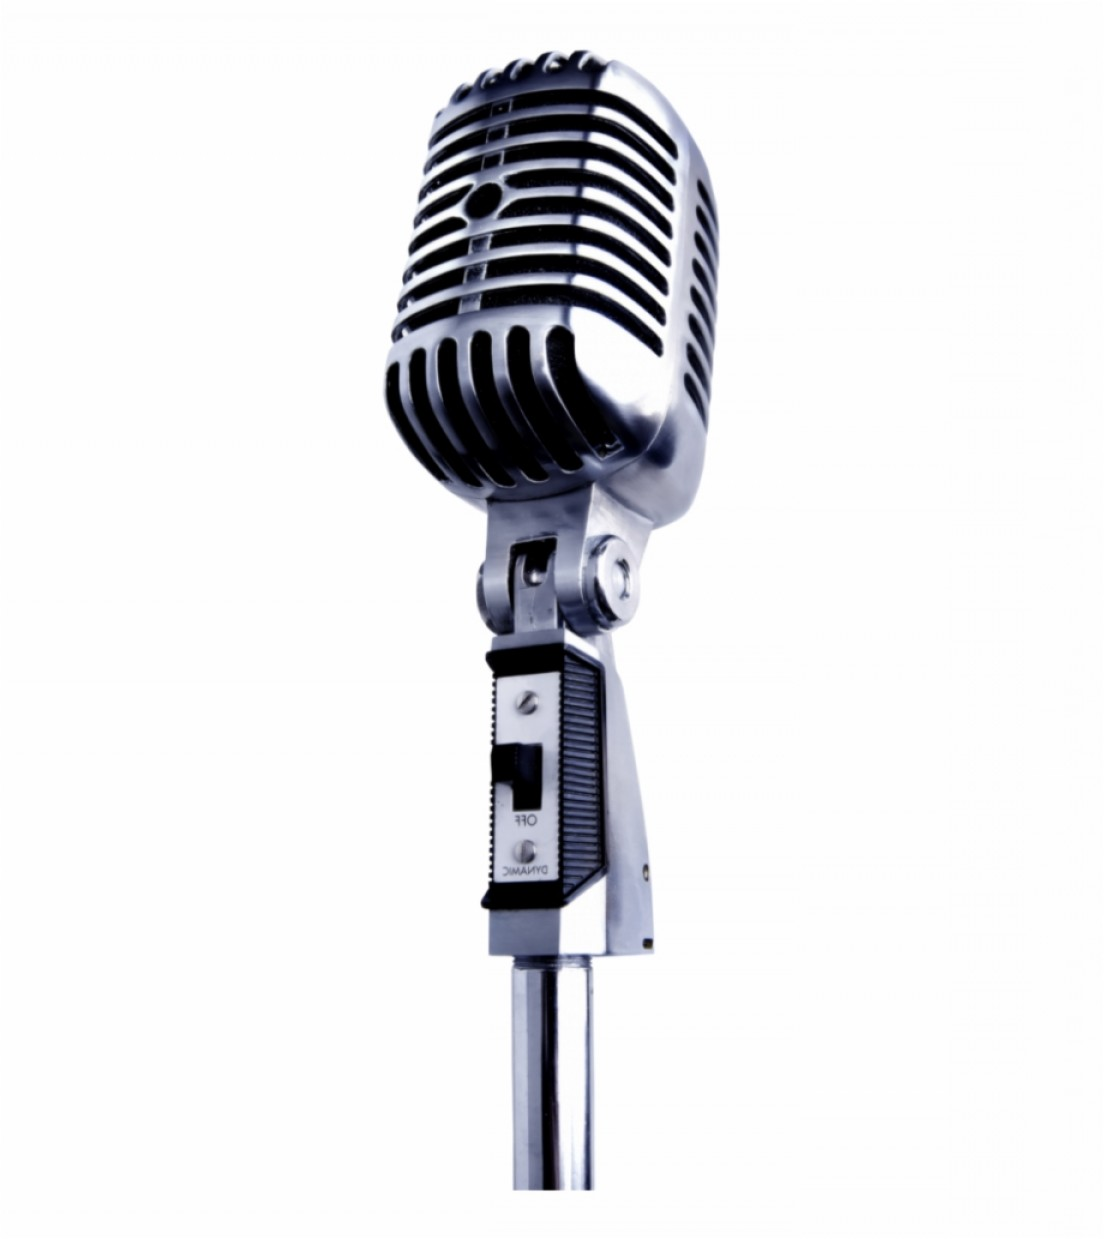 Mics Vector Designs: Ihimhbgambar Microphone Png Microphone On Transparent Background